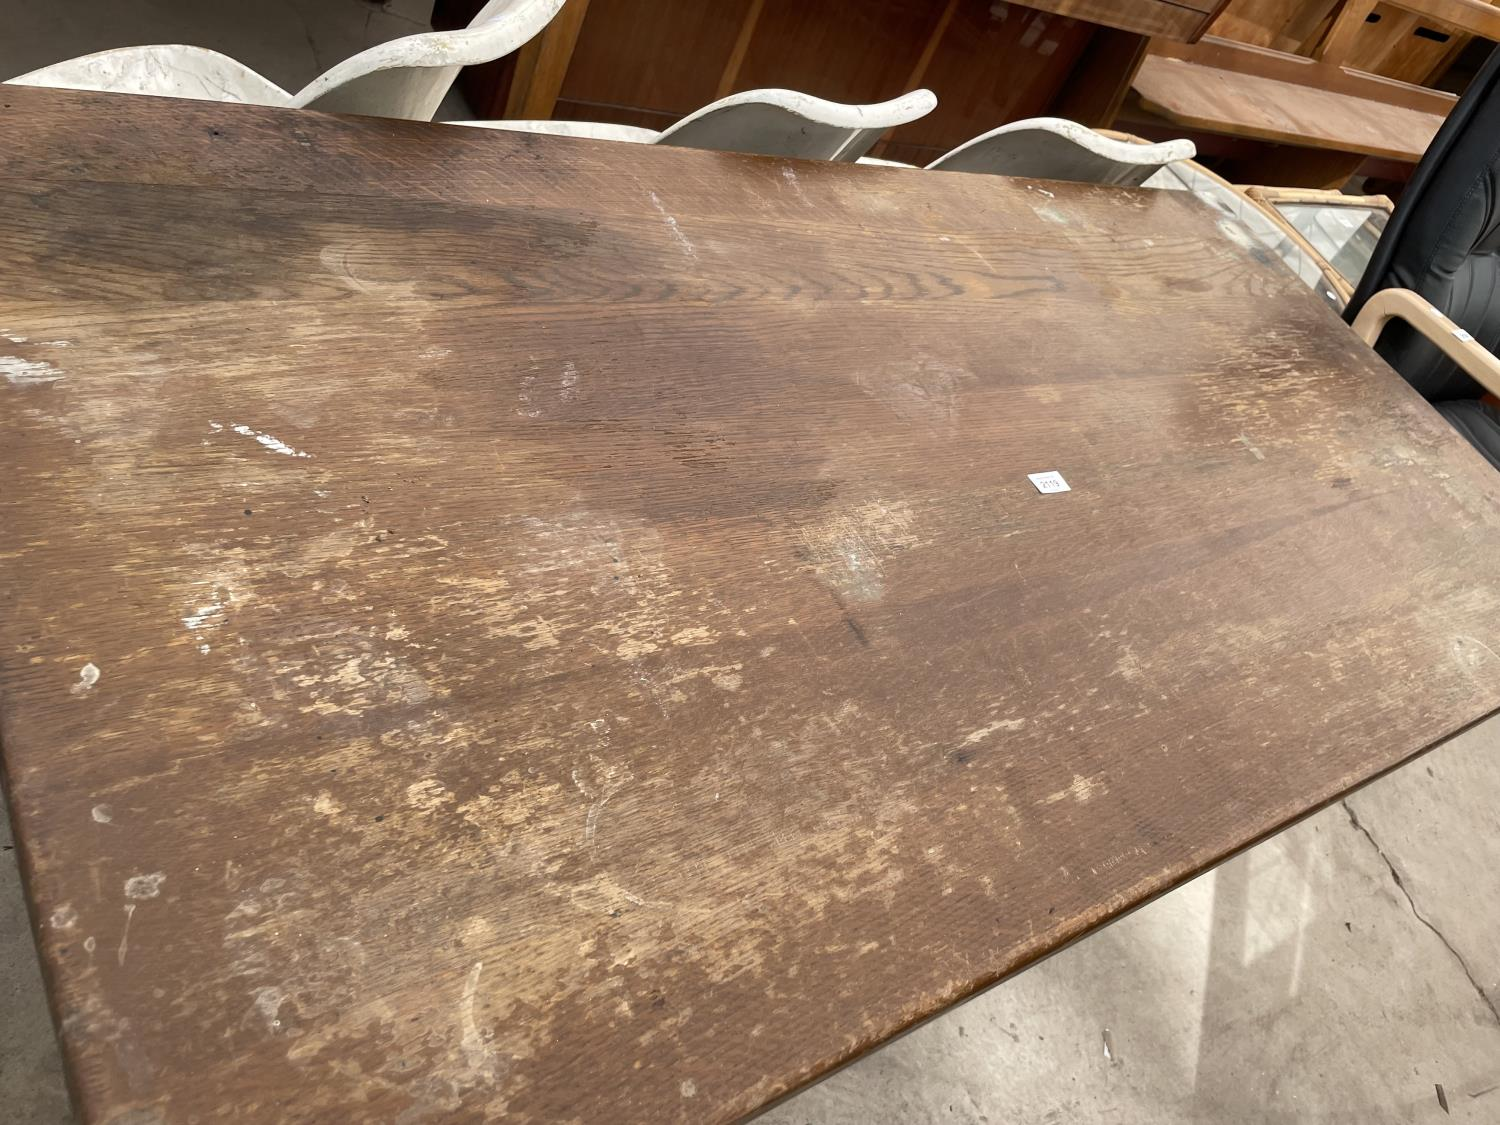 """A GEORGIAN STYLE OAK REFECTORY DINING TABLE ON TURNED TAPERED LEGS, 60X30"""" - Image 2 of 3"""